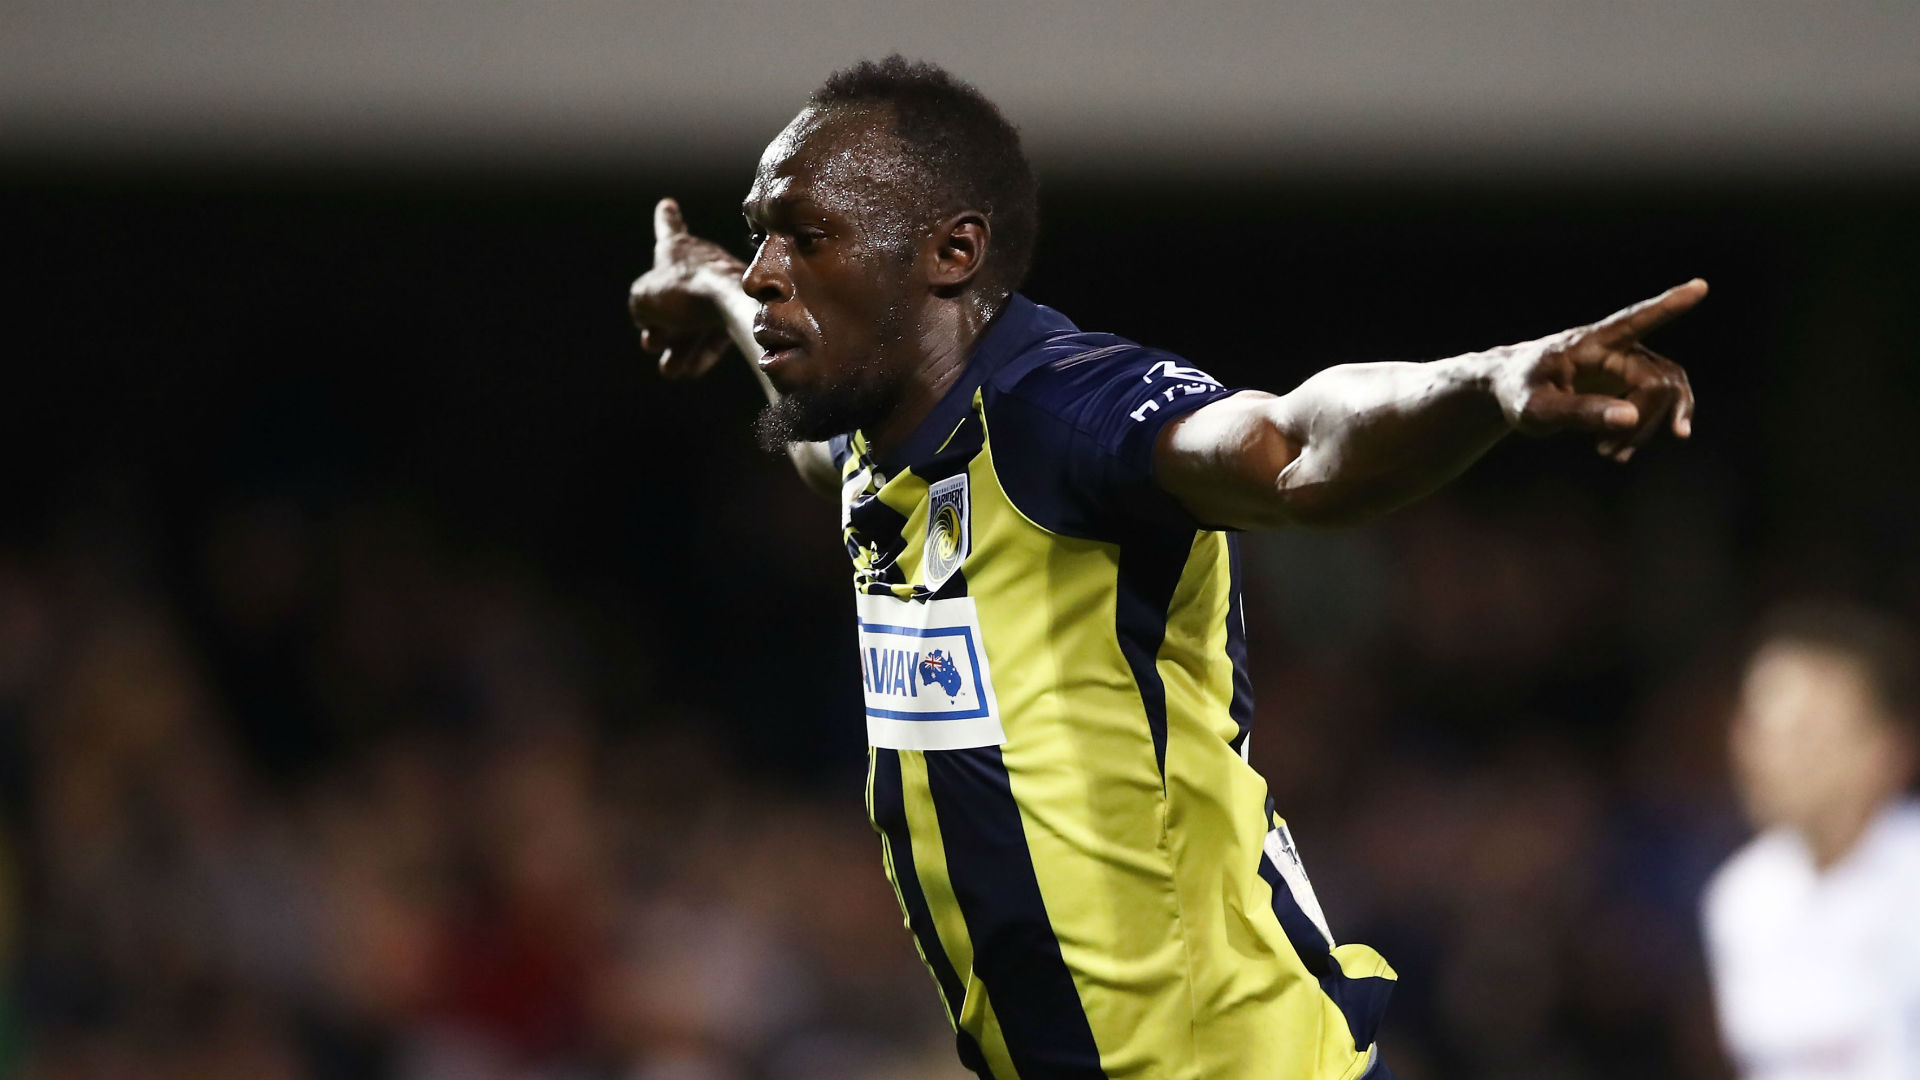 Usain Bolt scores first two goals in professional football